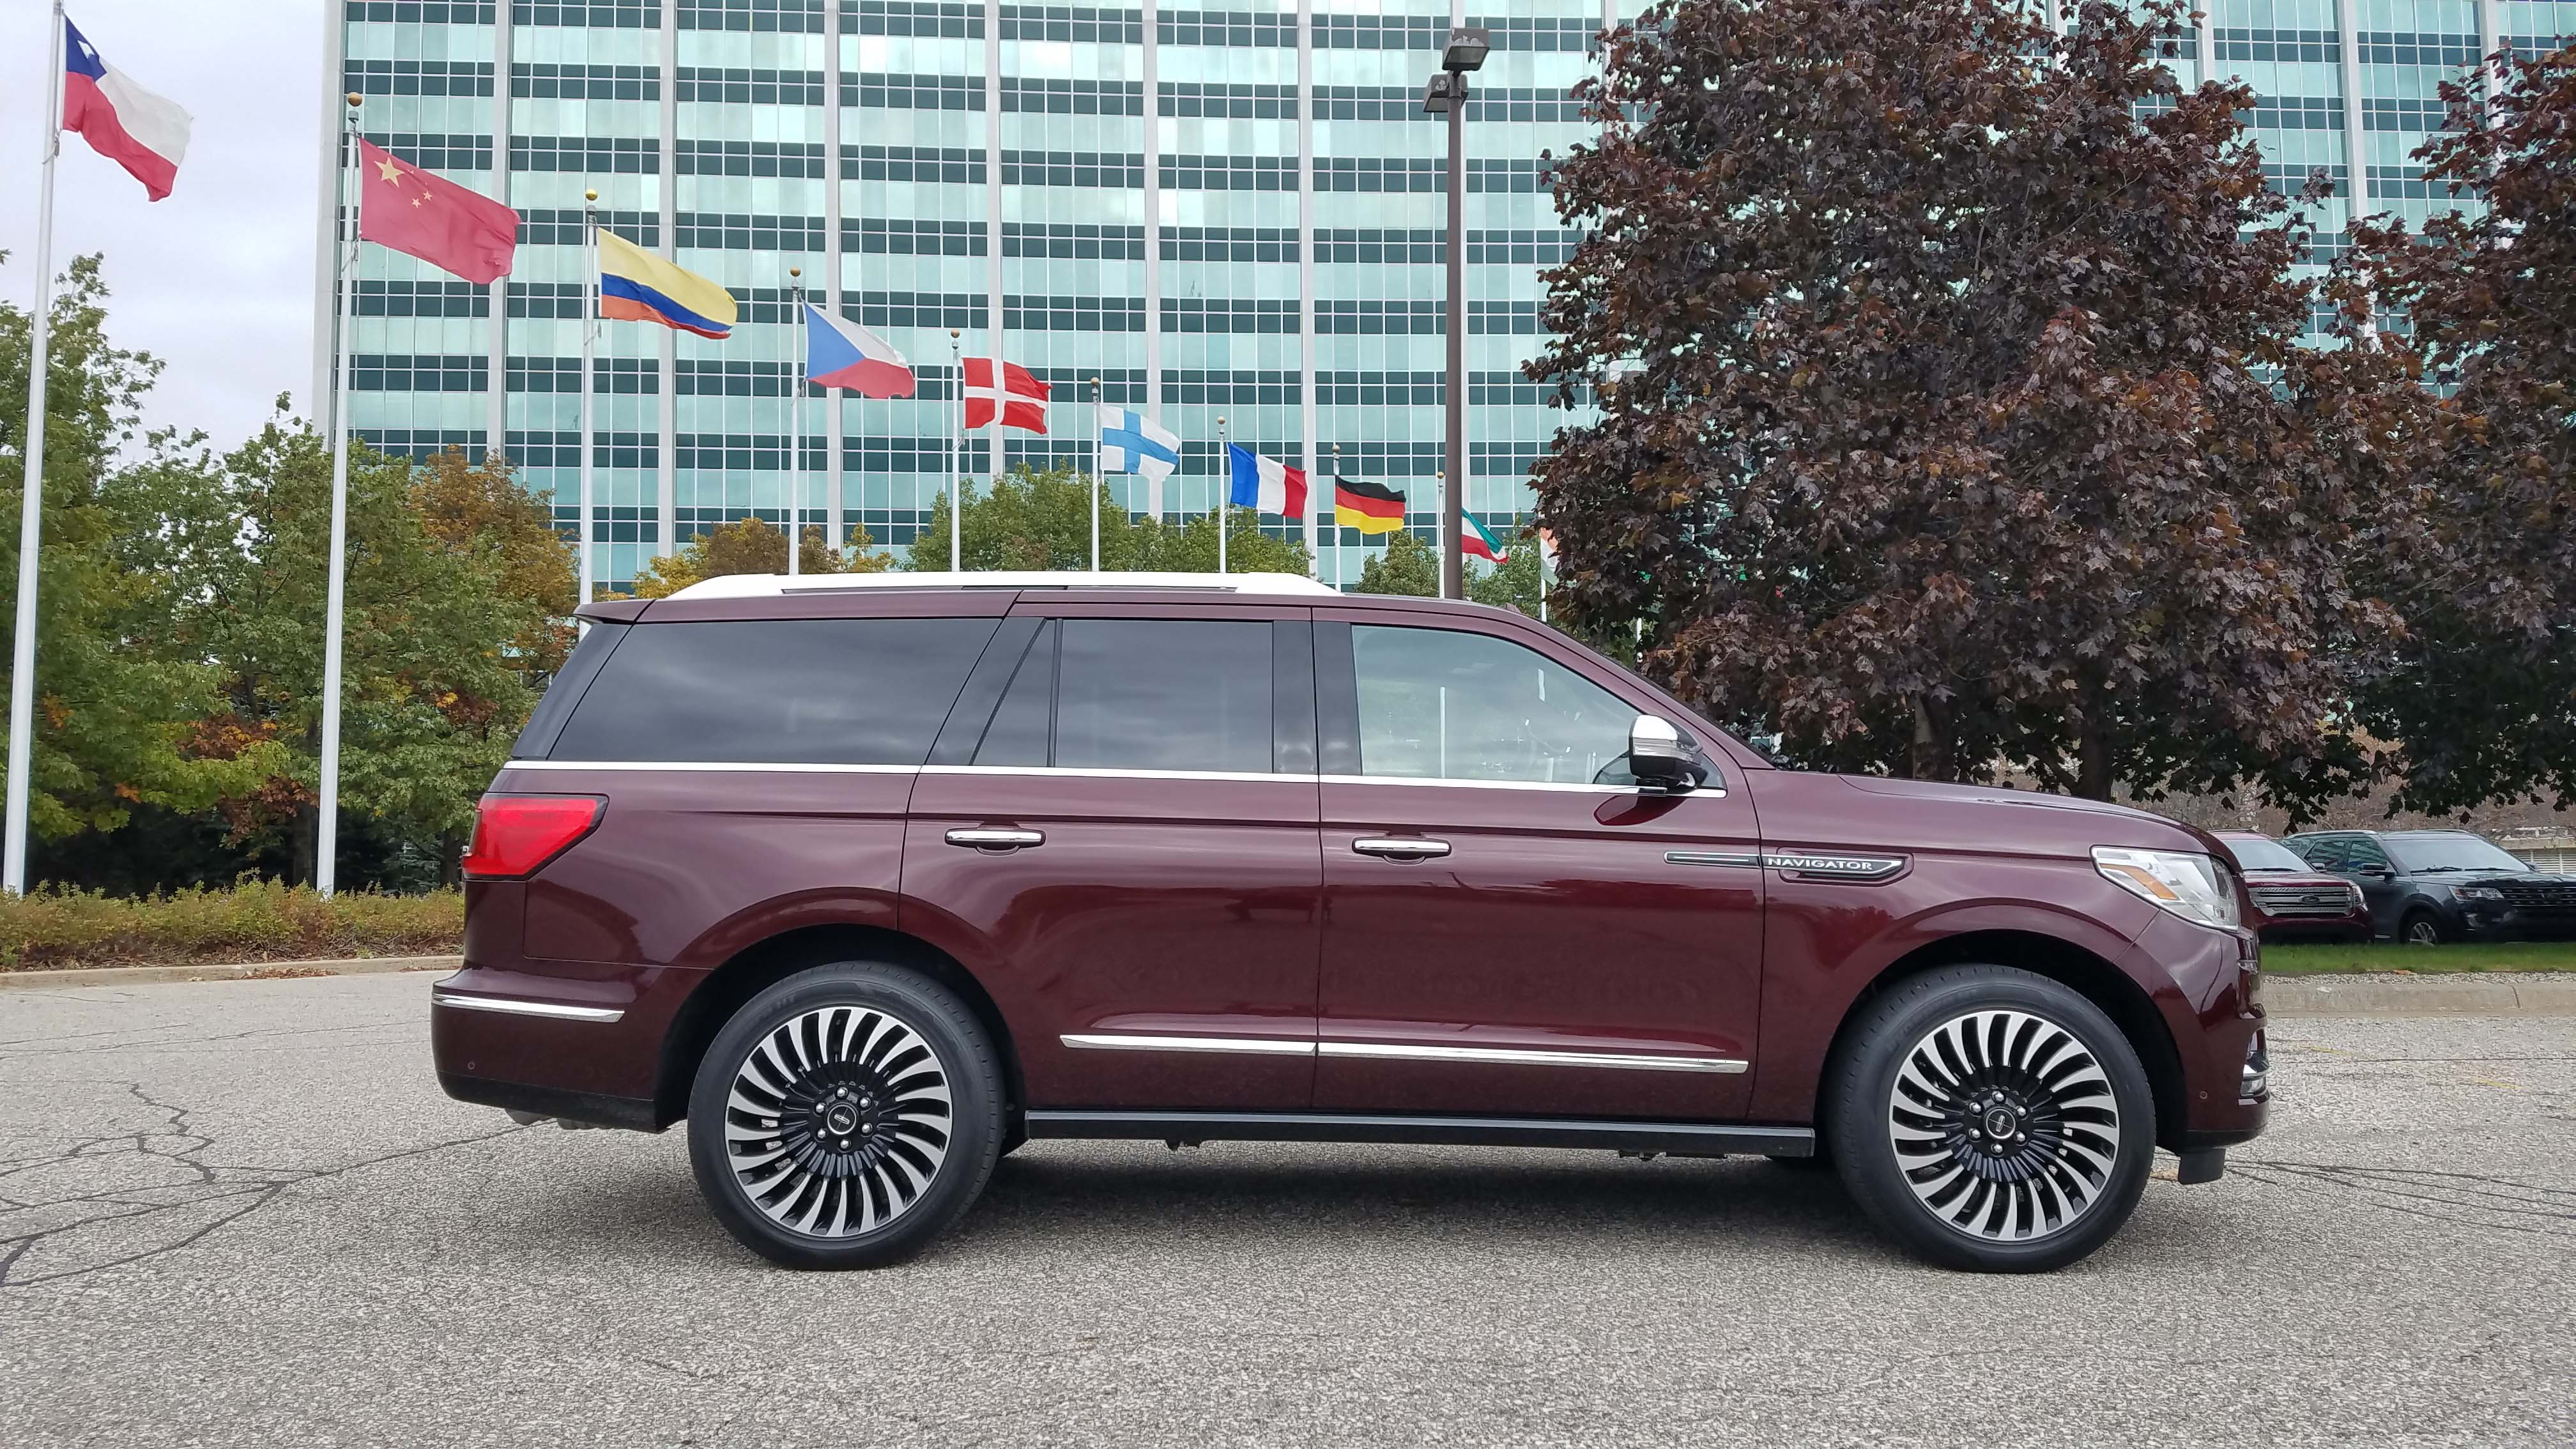 The 2018 Lincoln Navigator is 6 1/2 feet tall and 18